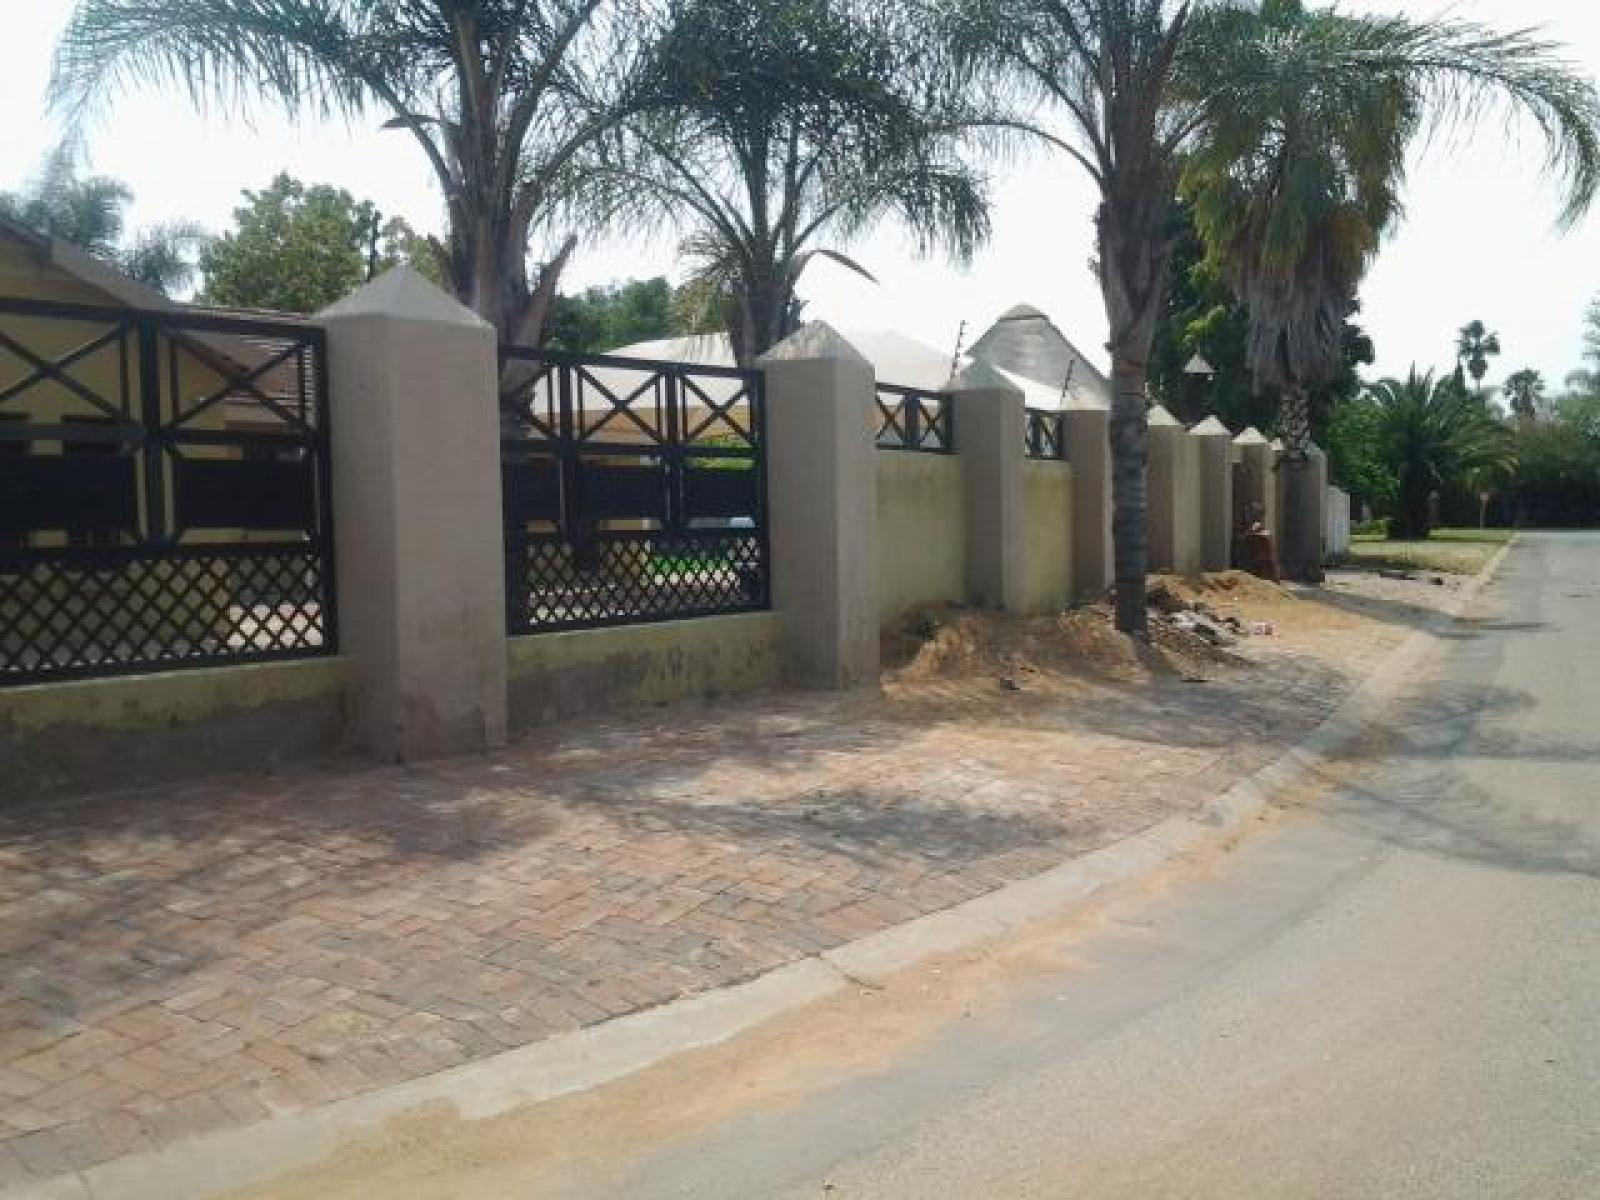 Spaces of property in Polokwane